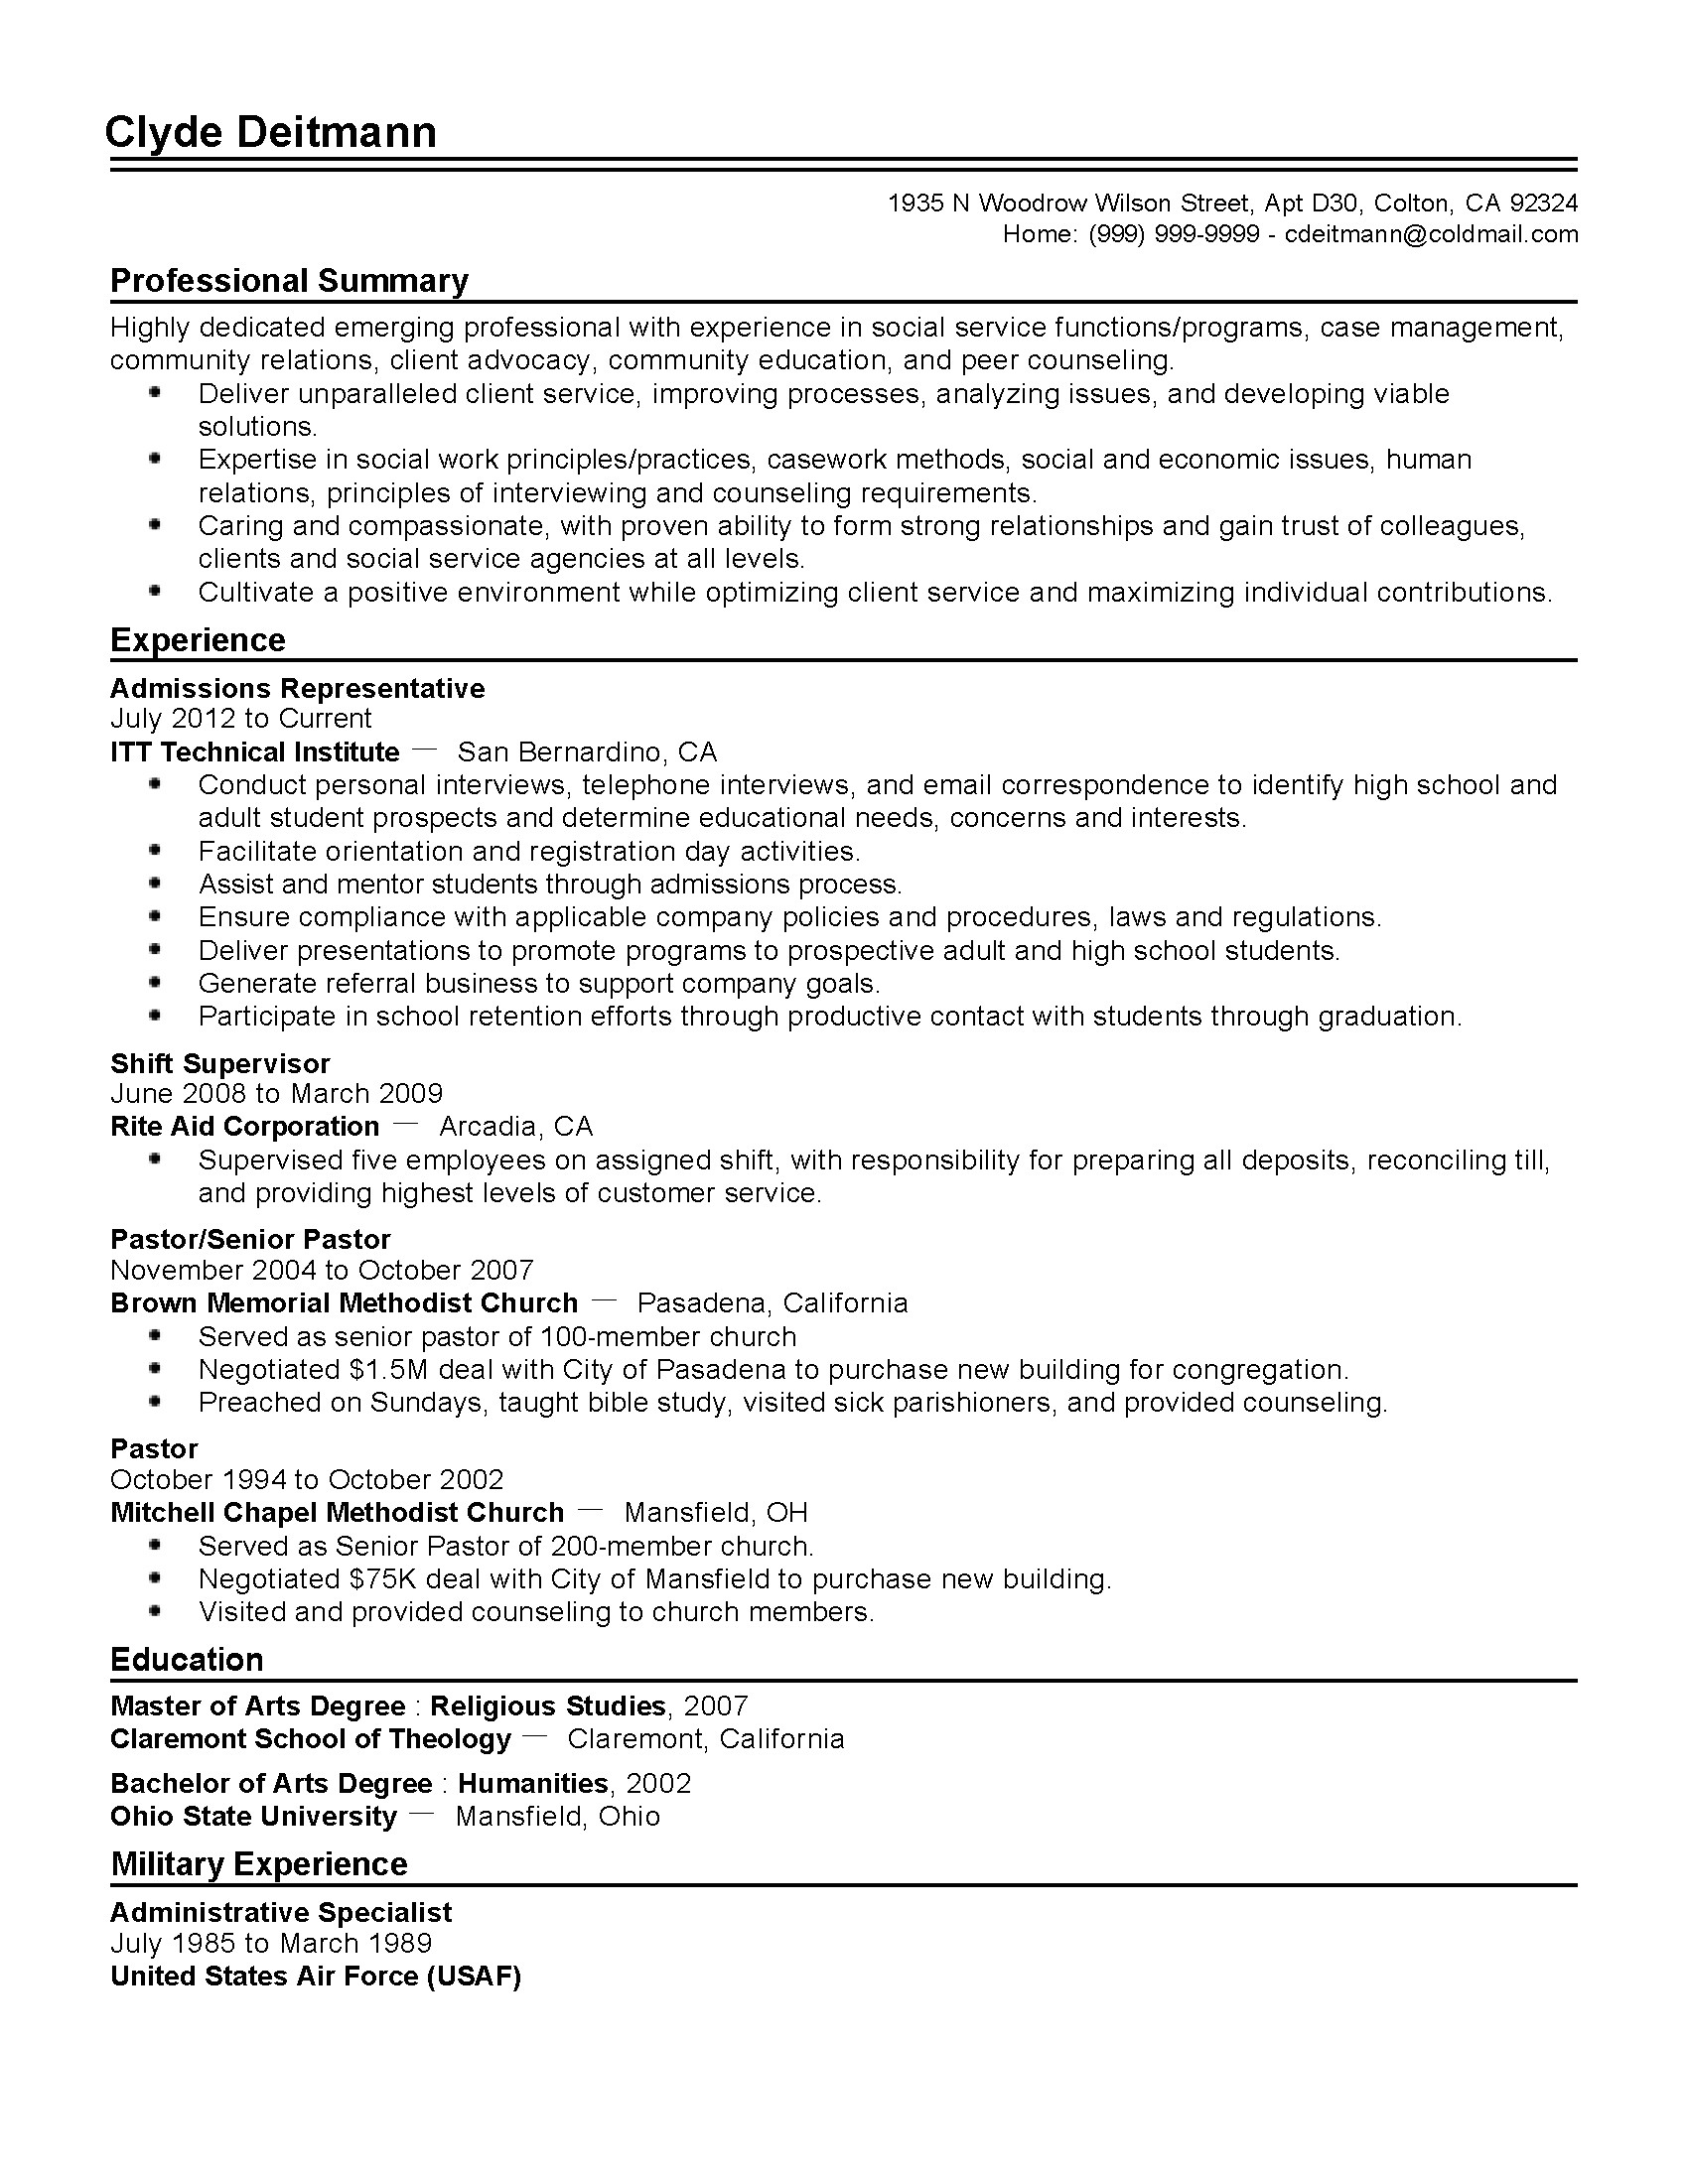 Sample Resume for College Application 15 Inspirational College Admission Resume Template